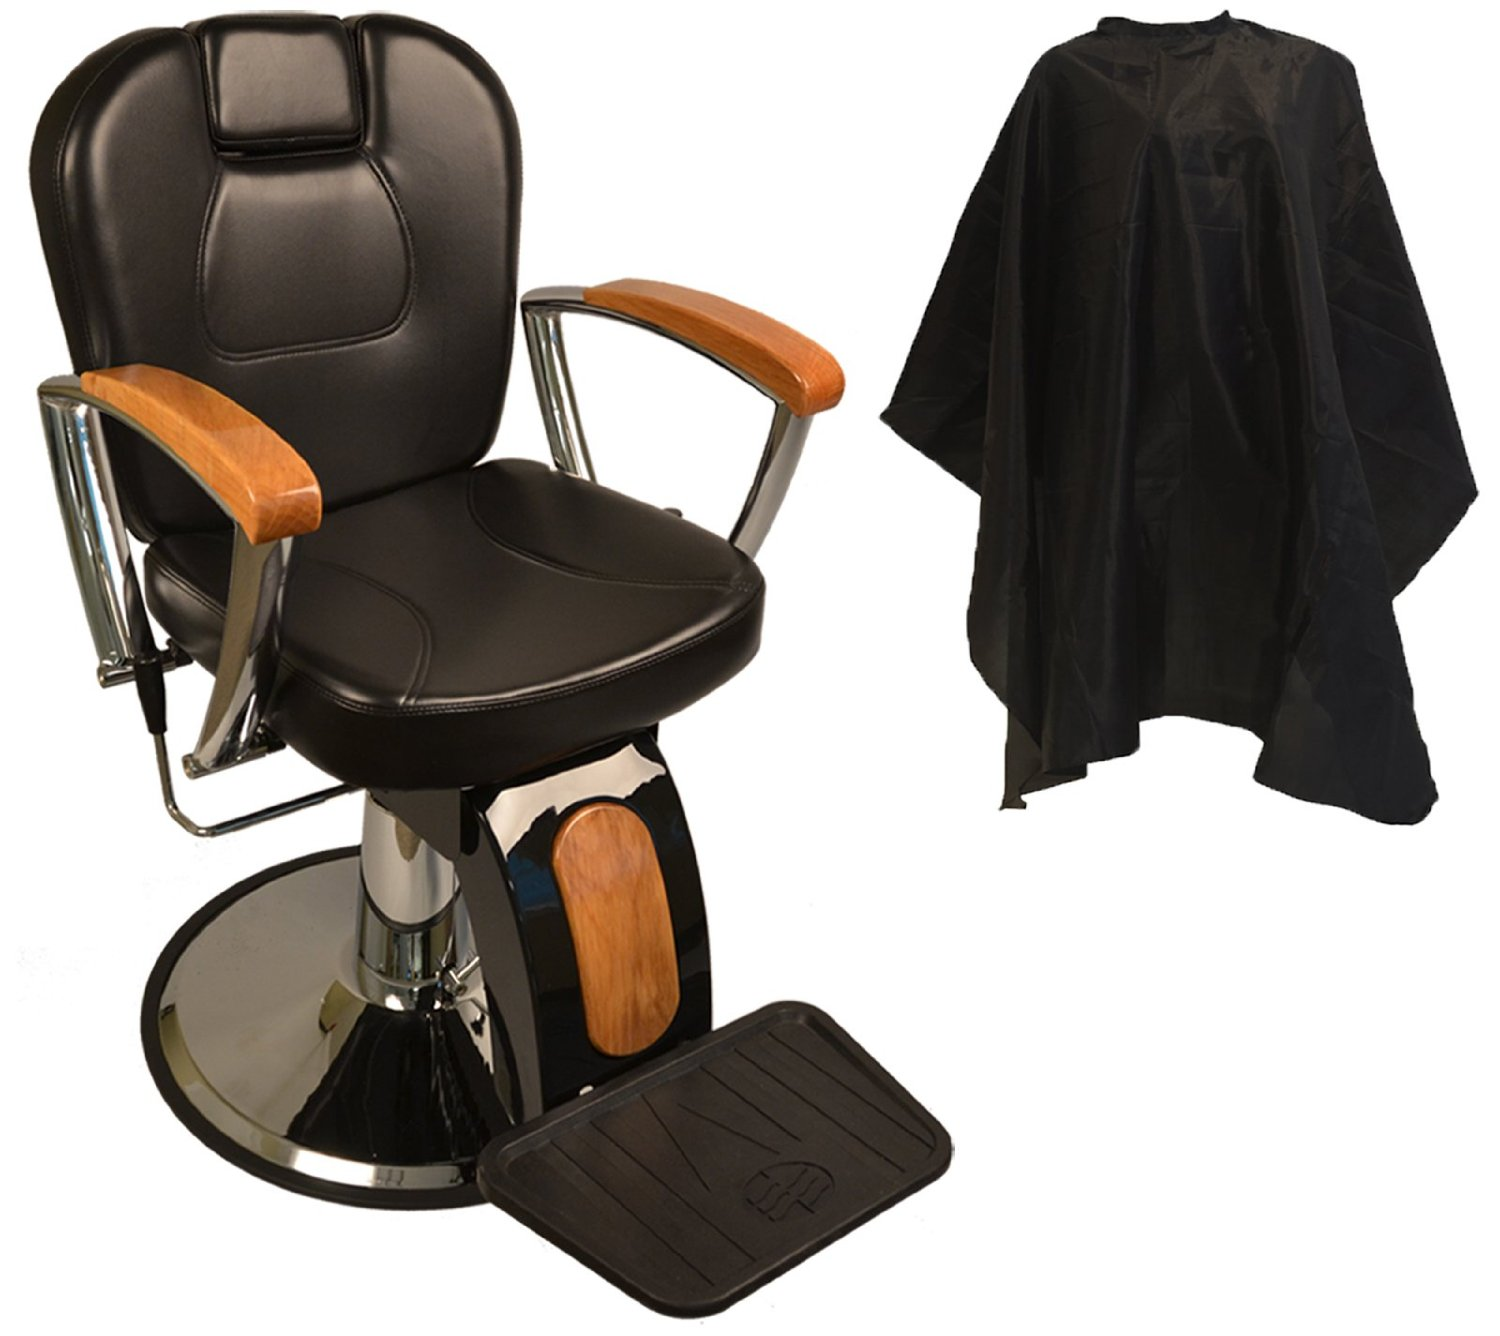 Amazon.com : LCL Beauty Reclining Hydraulic Barber Chair With Natural Oak Wood Armrests & Wood Grain Accent